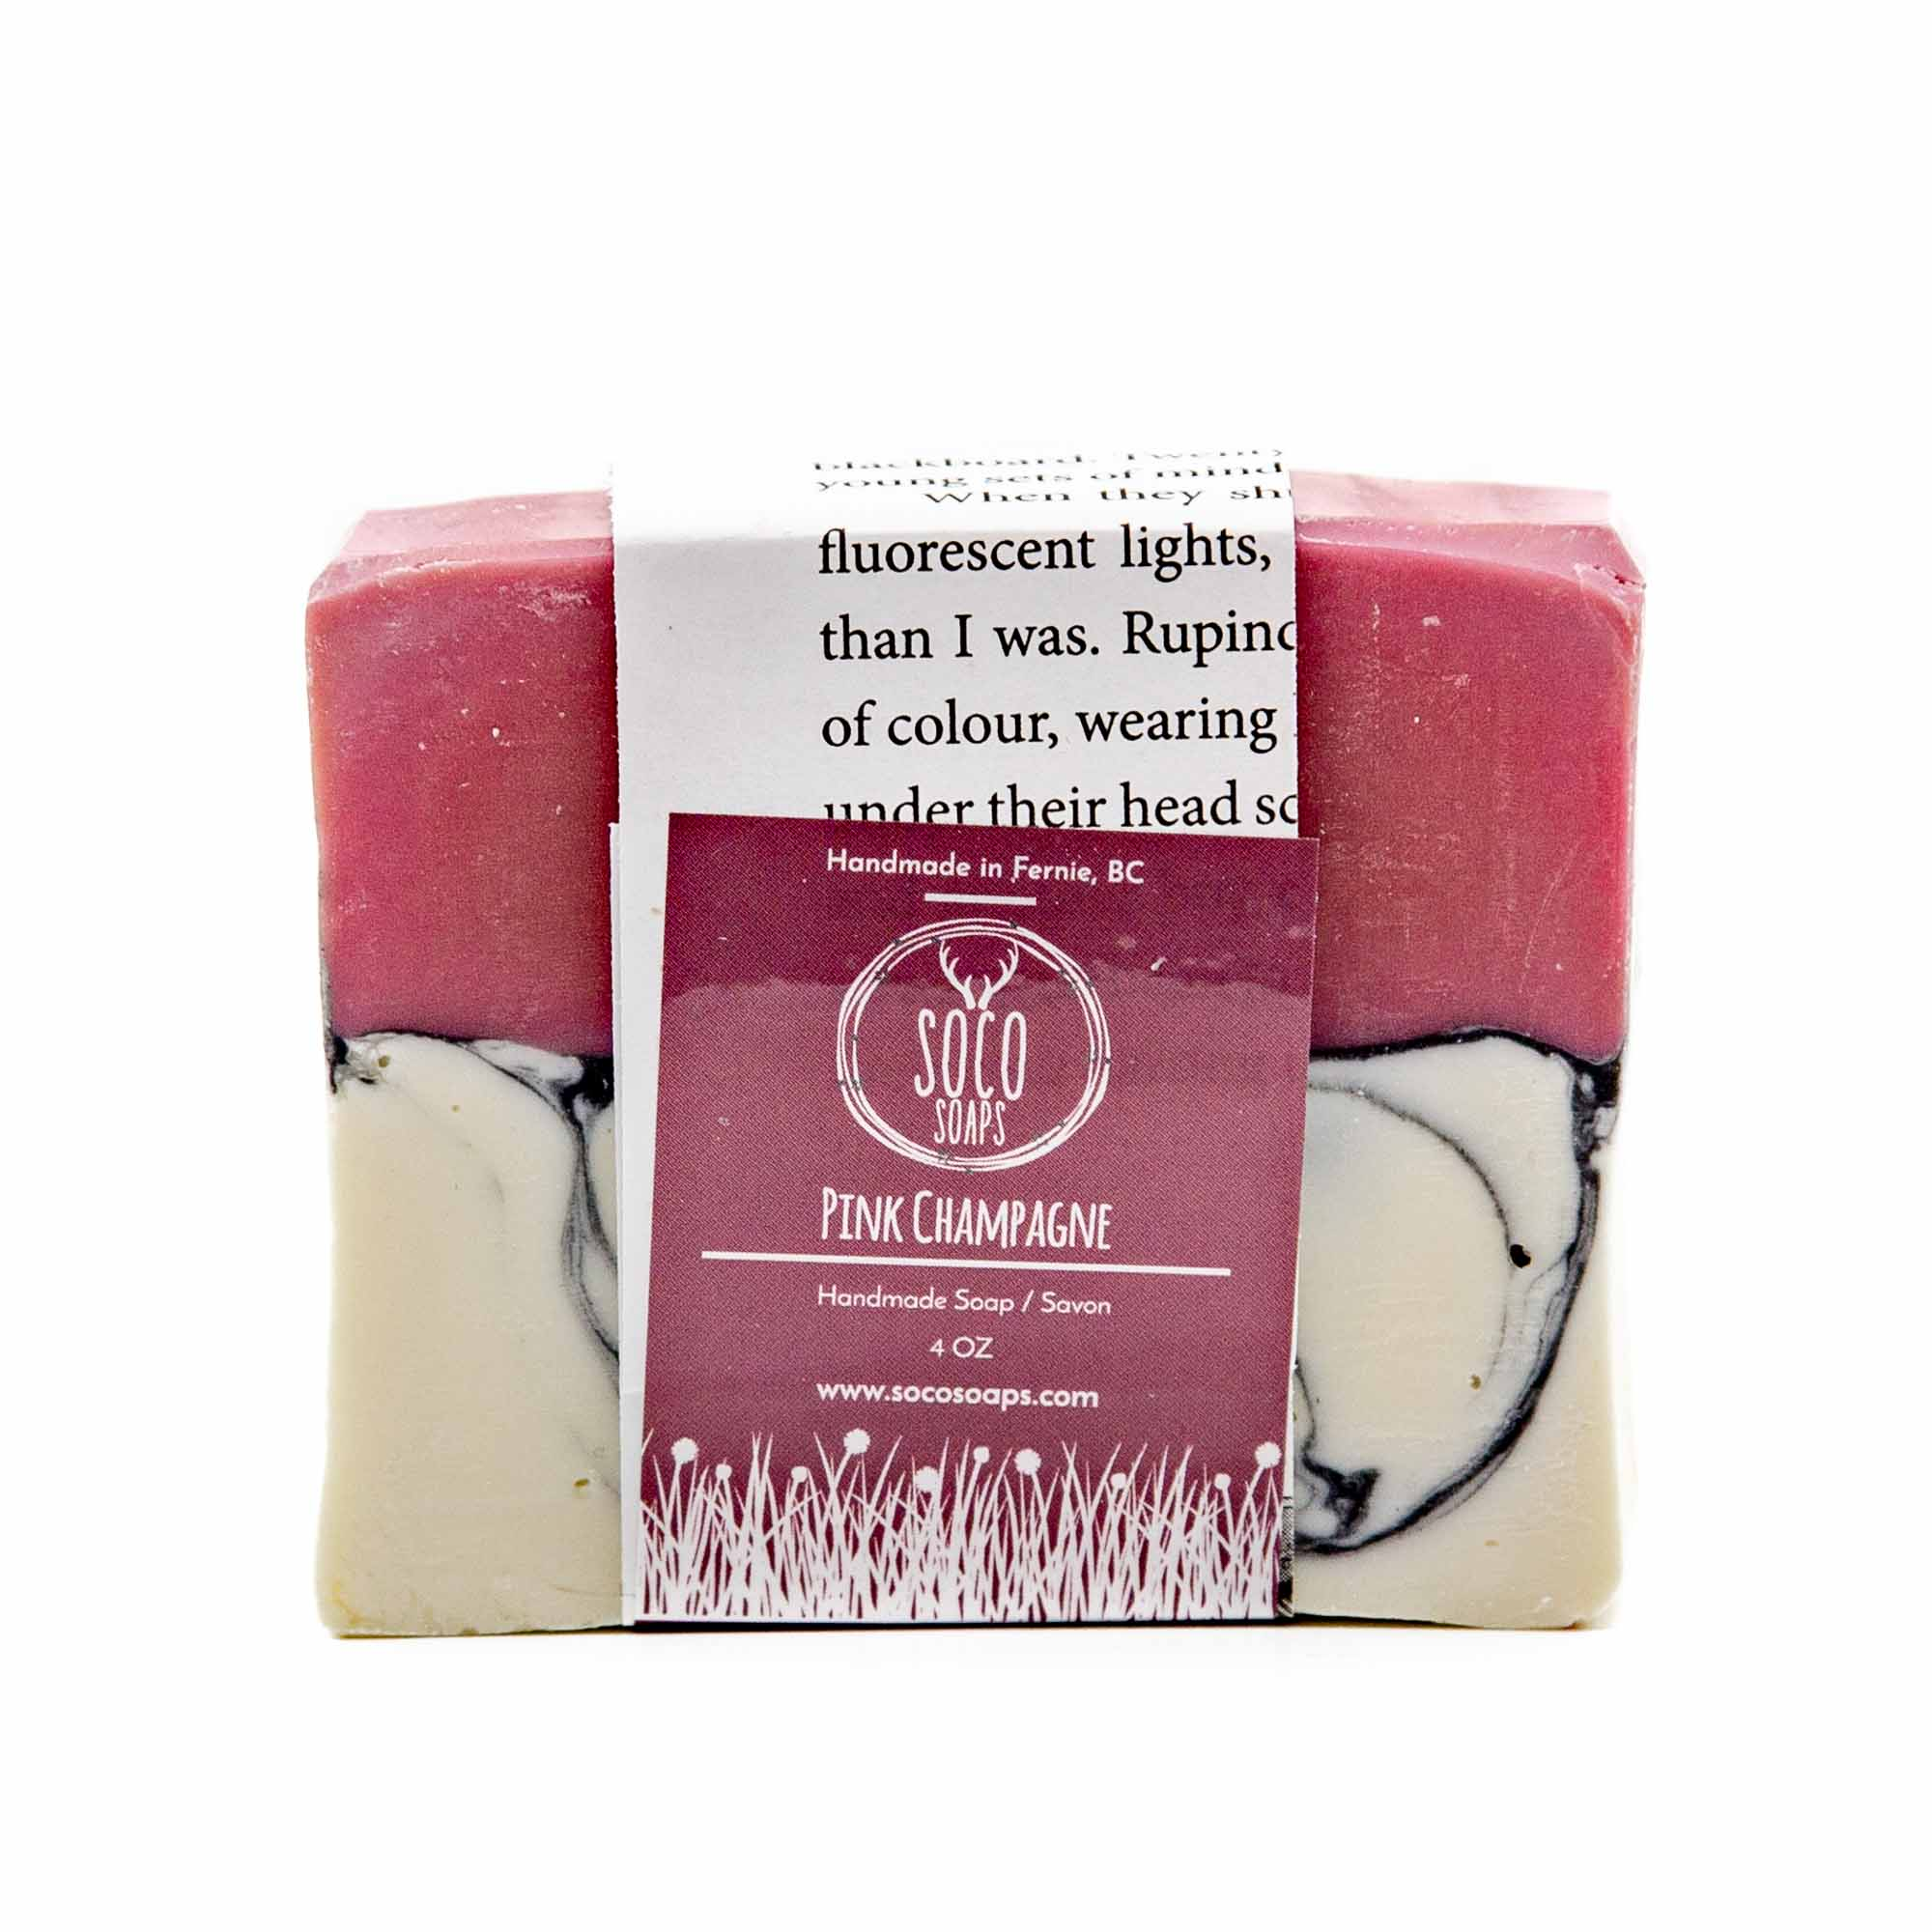 Soco Soaps Pink Champagne Soap - Mortise And Tenon